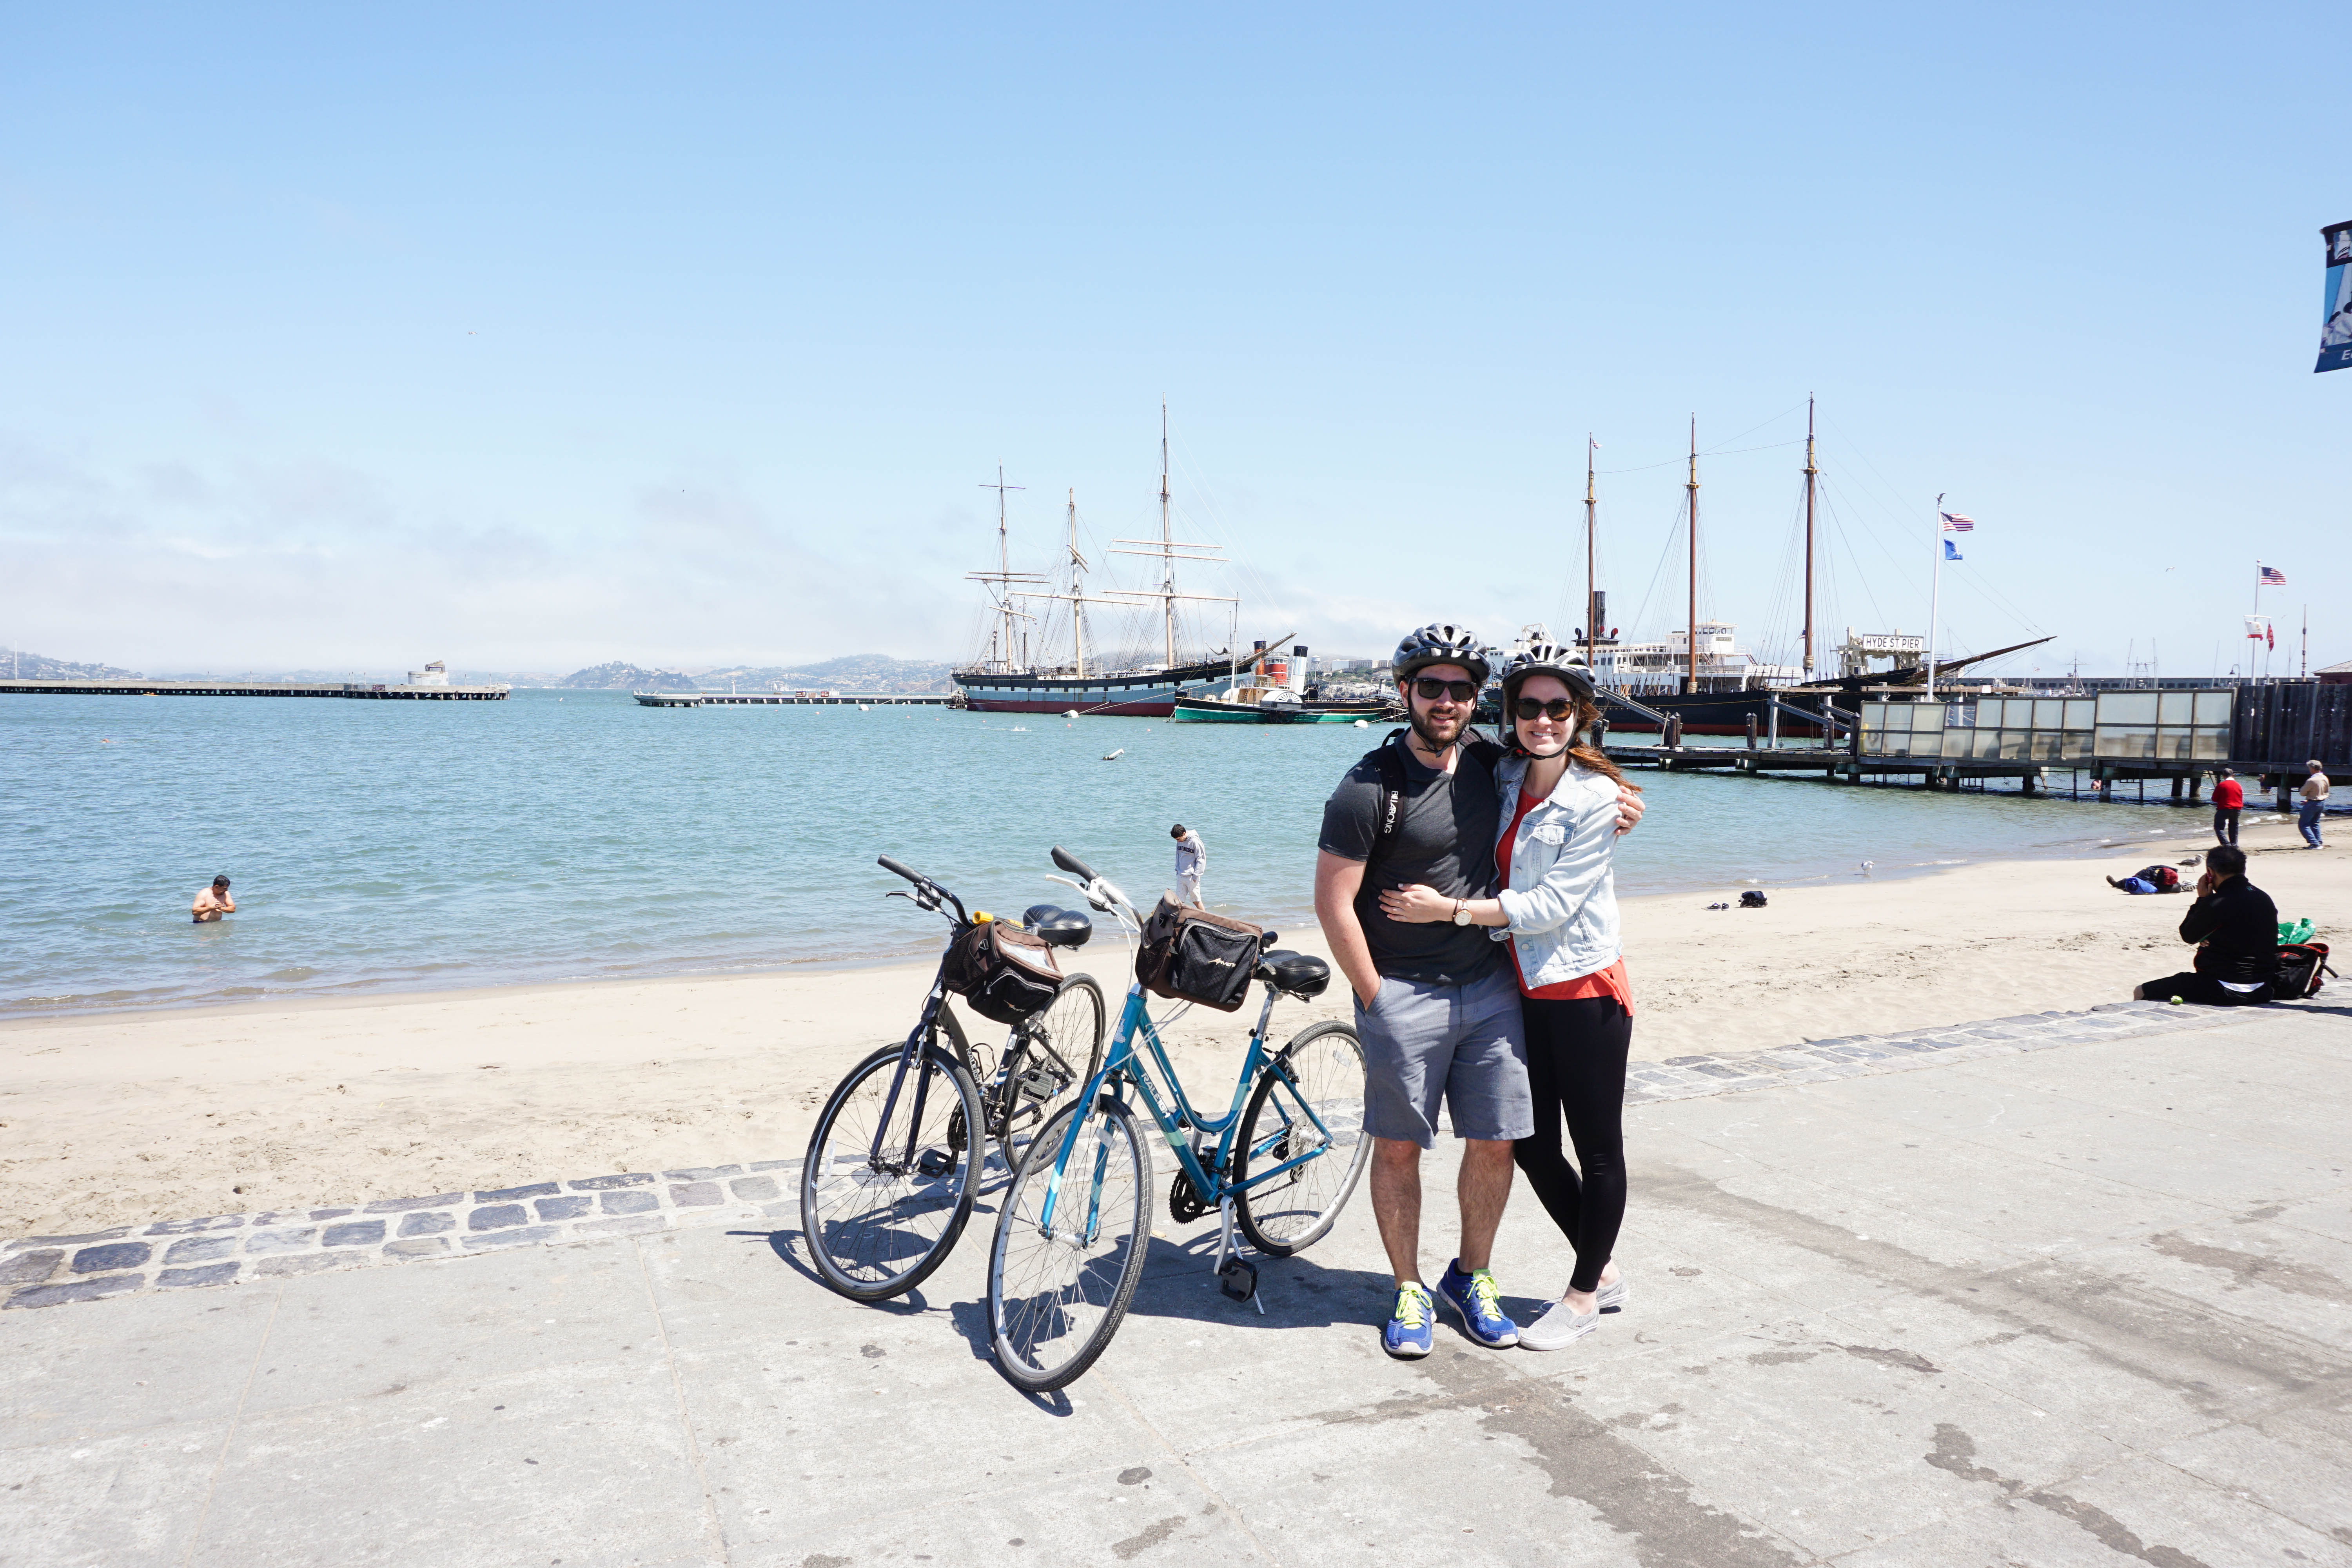 Things To Do in San Francisco -- Bike the Golden Gate Bridge! Details here.